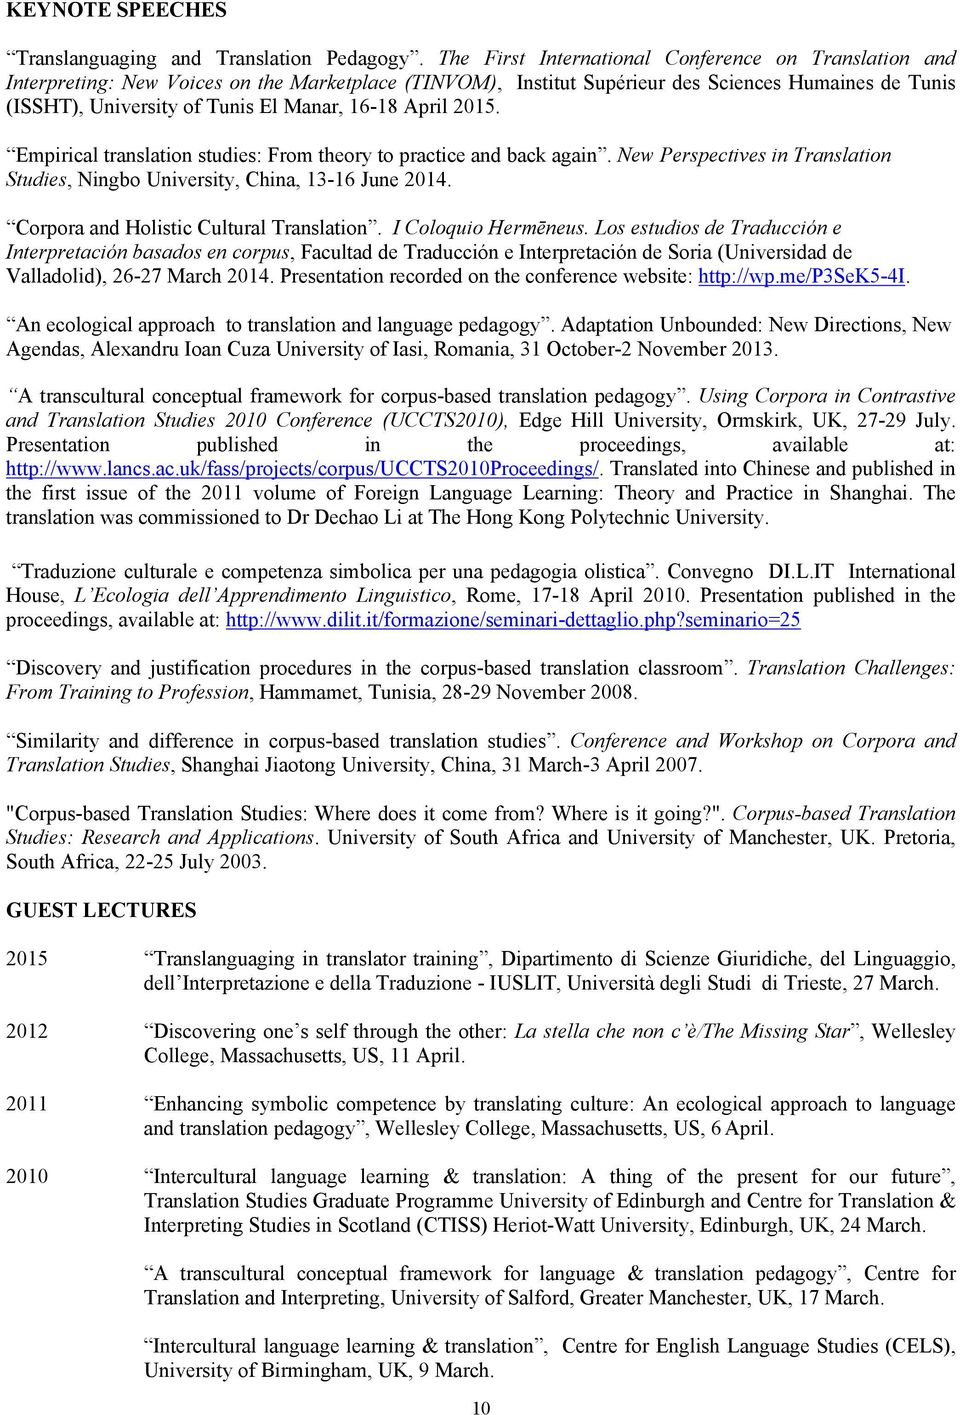 Curriculum vitae sara laviosa formerly laviosa braithwaite pdf 16 18 april 2015 empirical translation studies from theory to practice and back fandeluxe Images